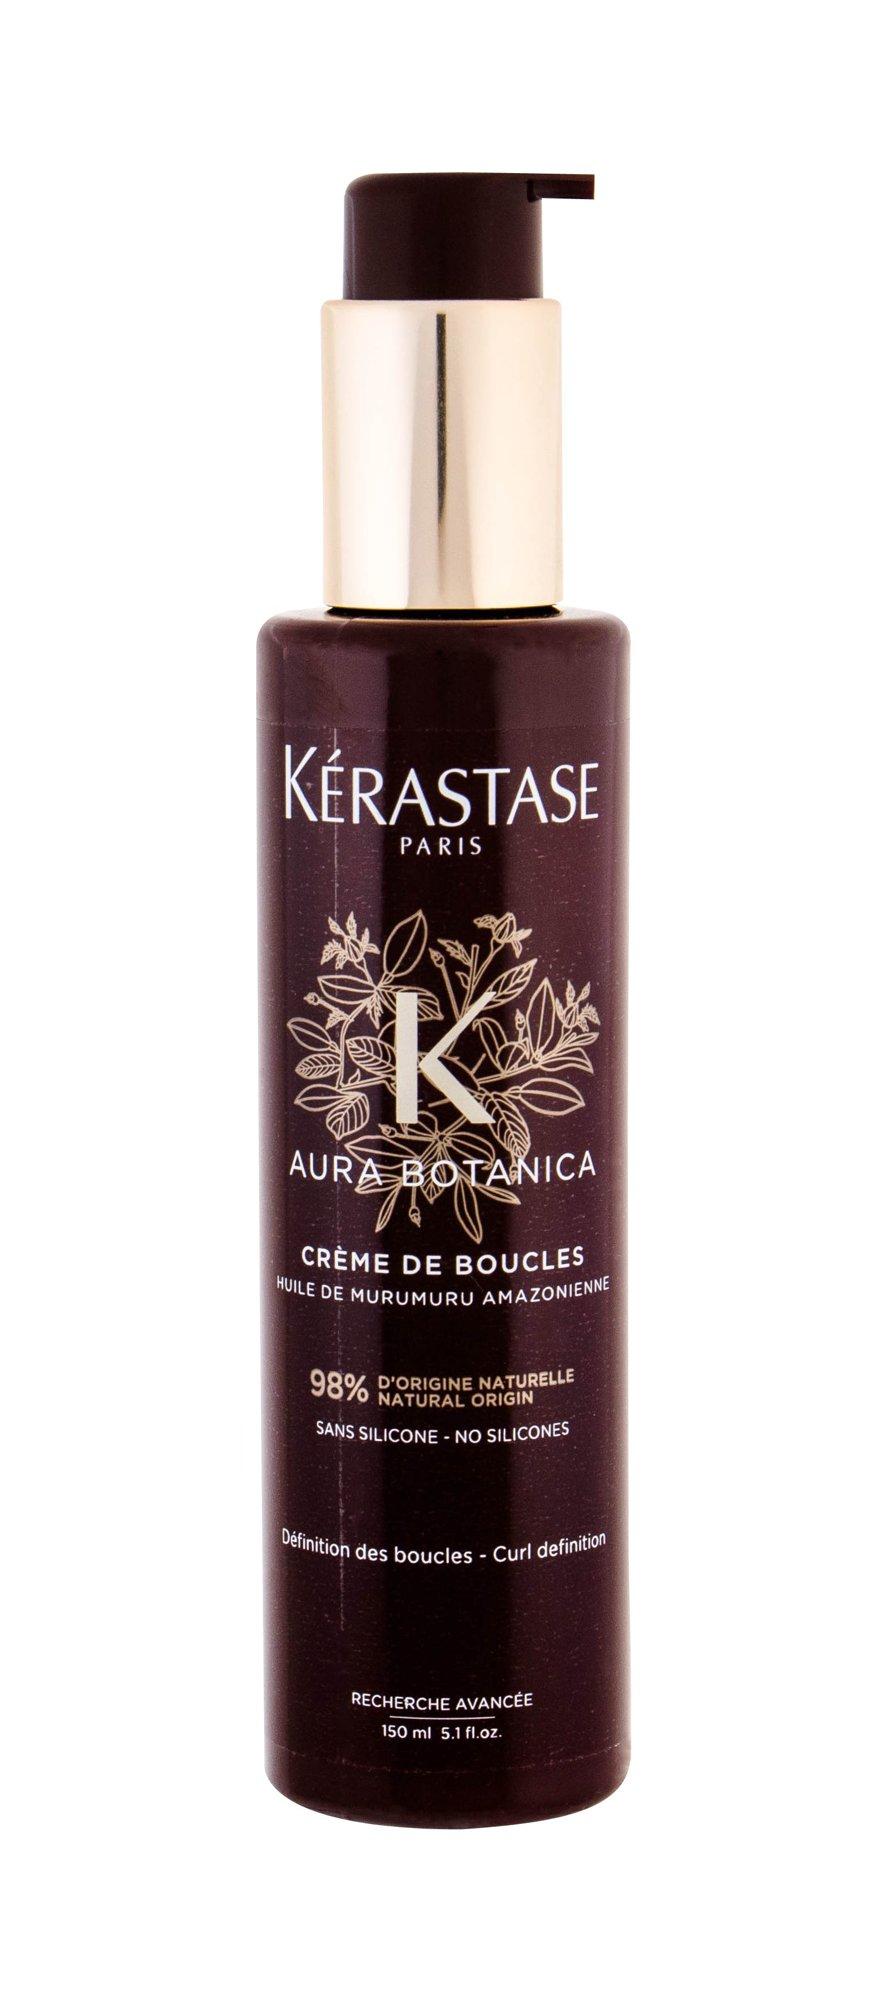 Kérastase Aura Botanica For Heat Hairstyling 150ml